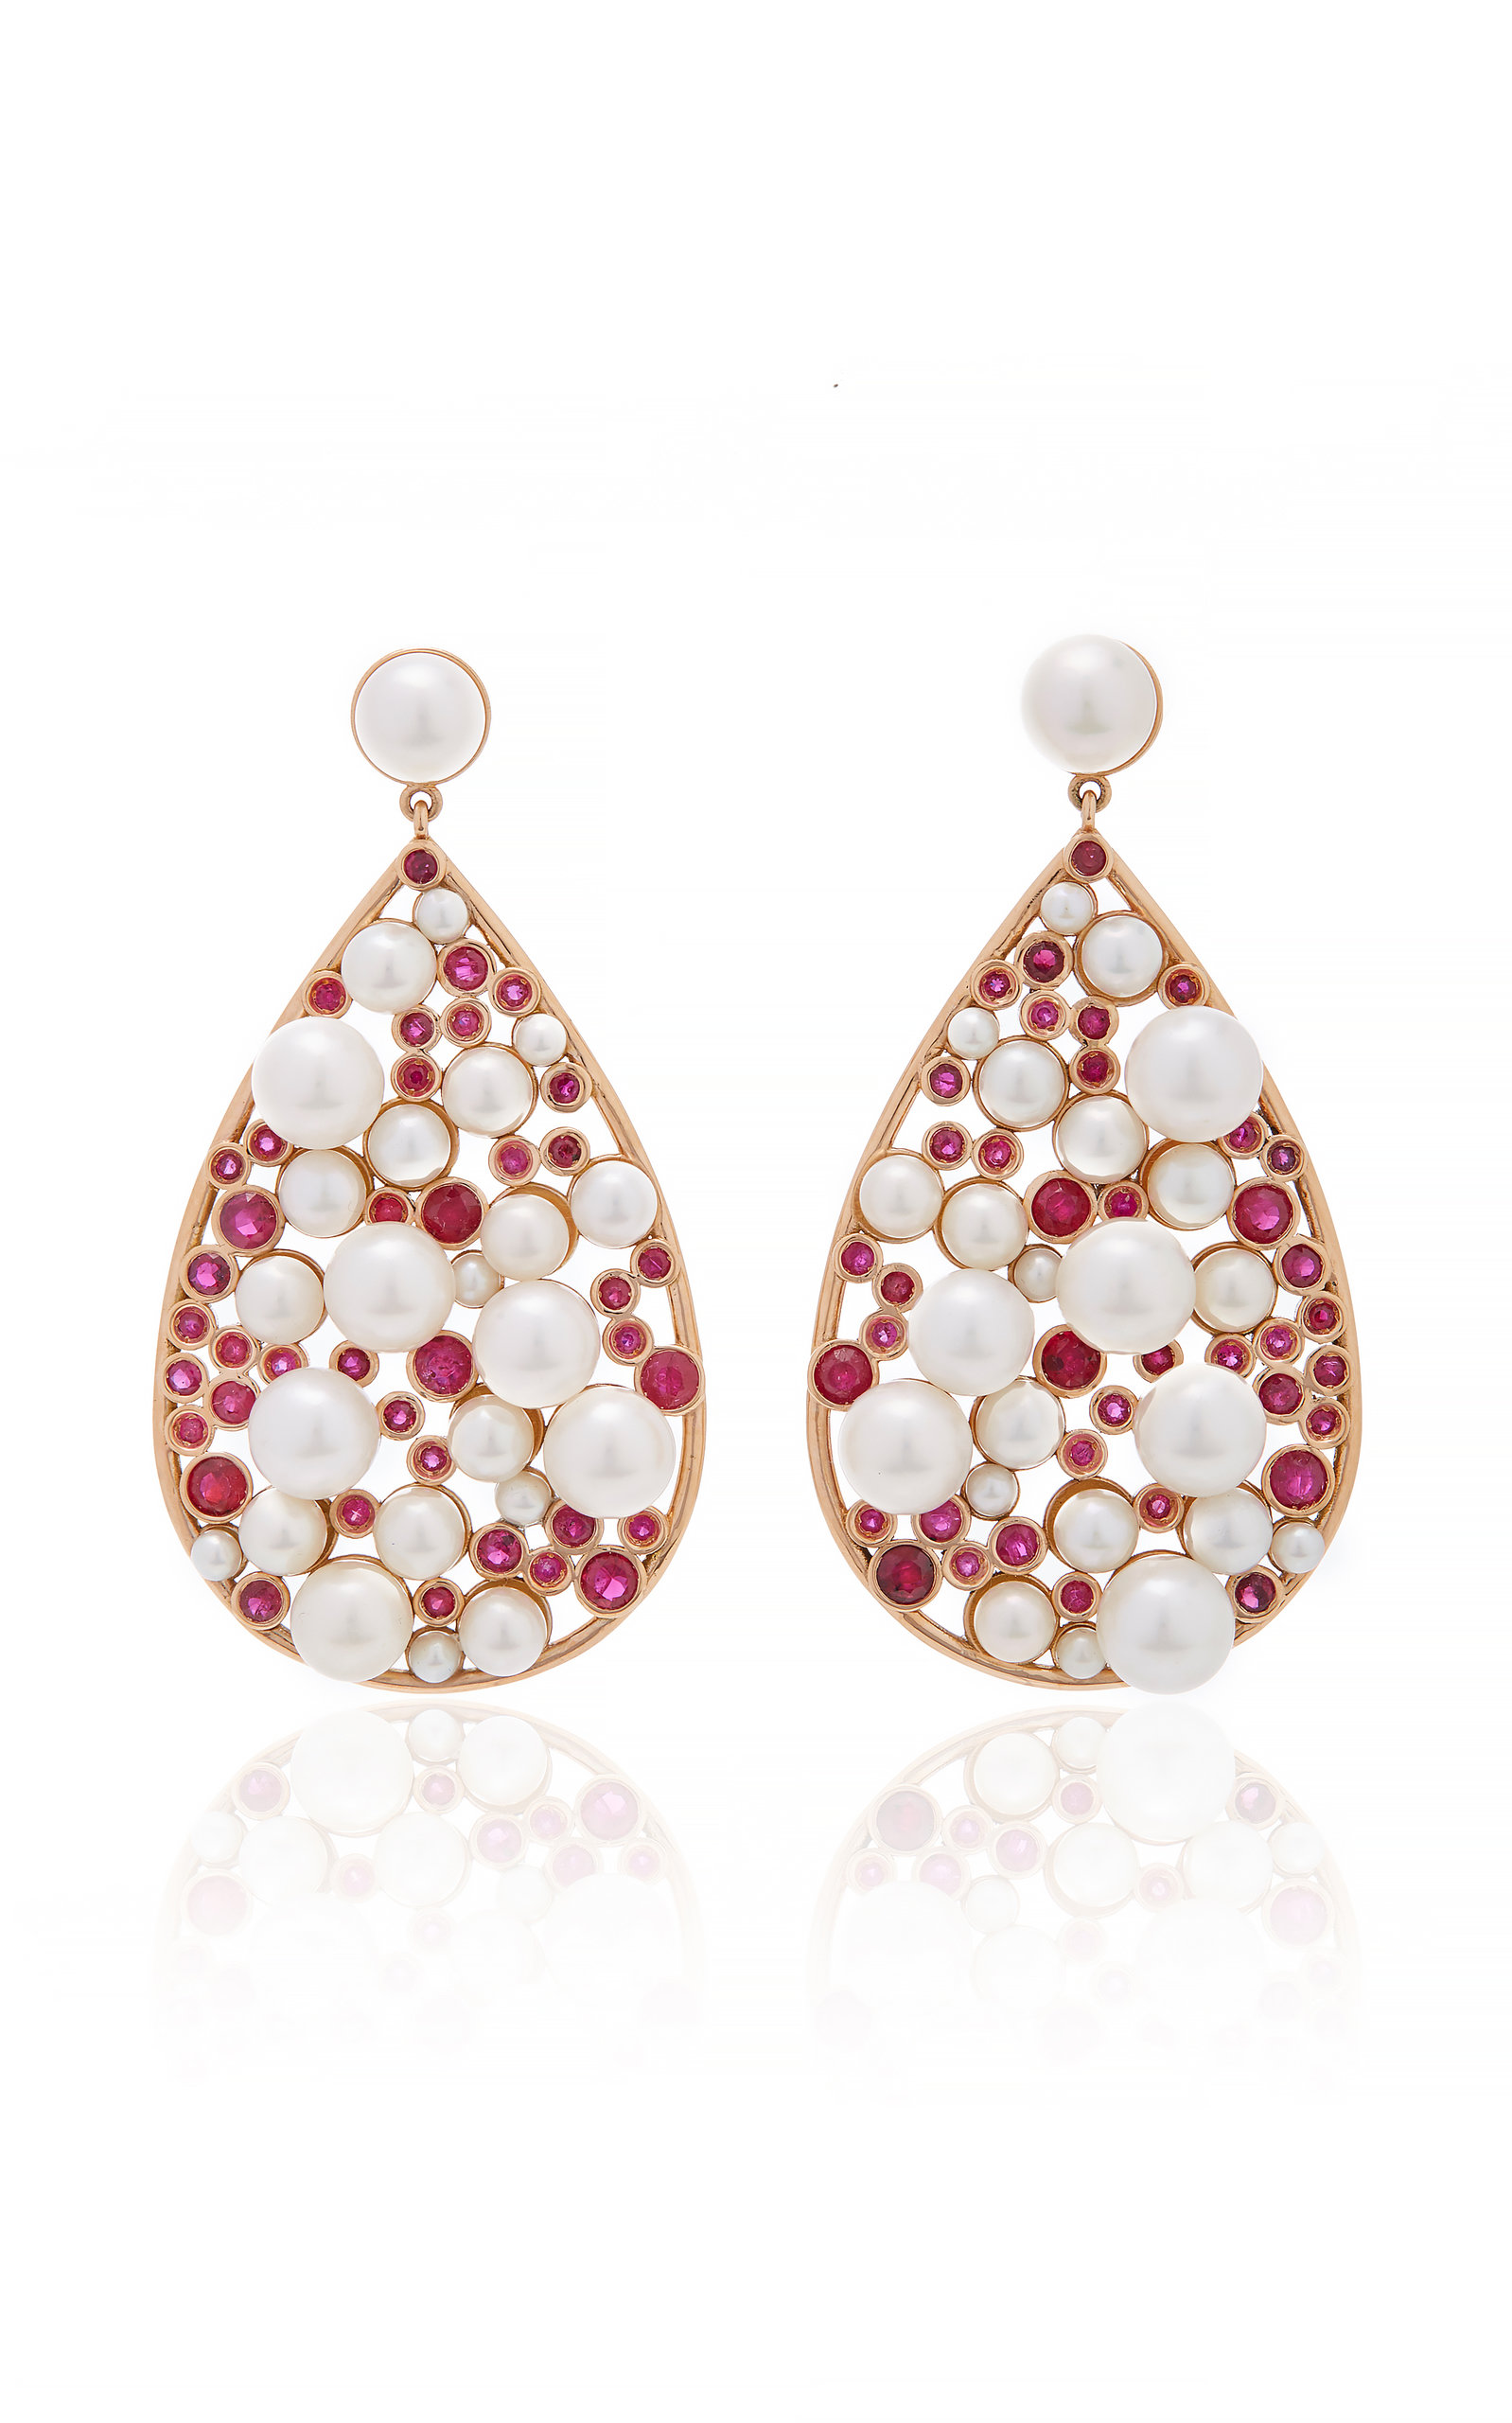 NANCY NEWBERG TEARDROP RUBY EARRINGS